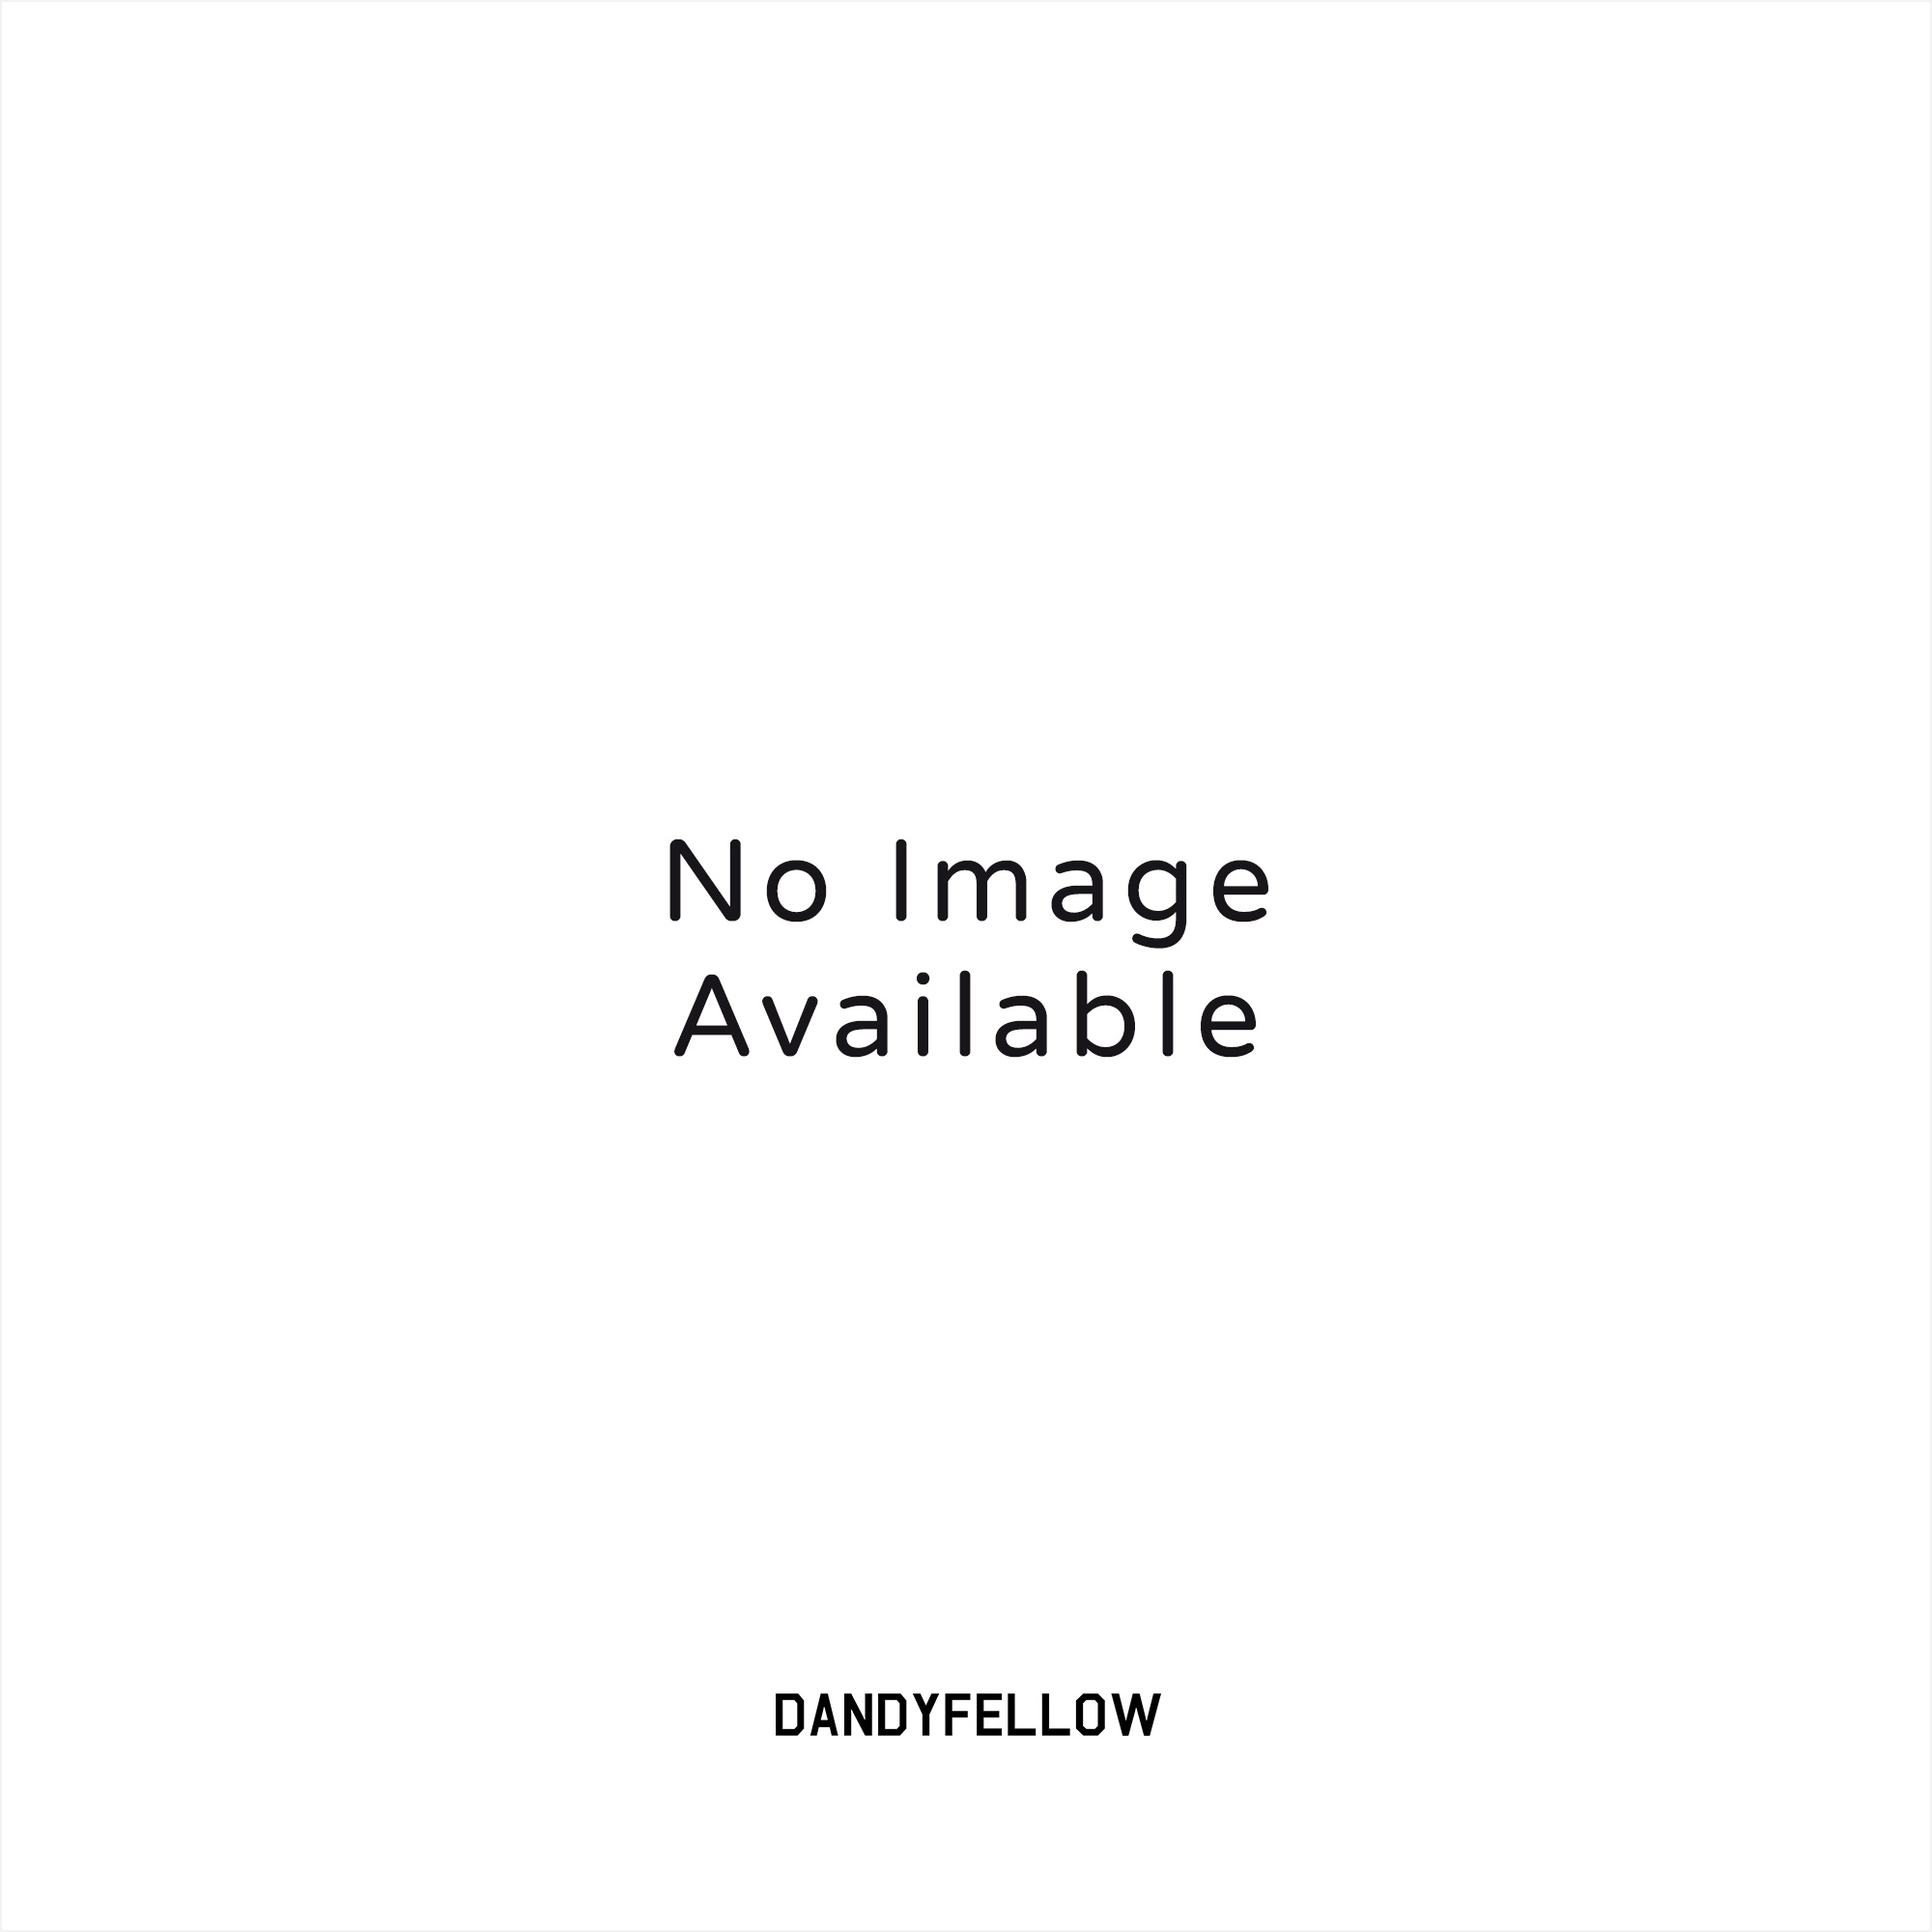 bc8a68ec881 Adidas Y-3 Kaiwa (Black   White) at Dandy Fellow